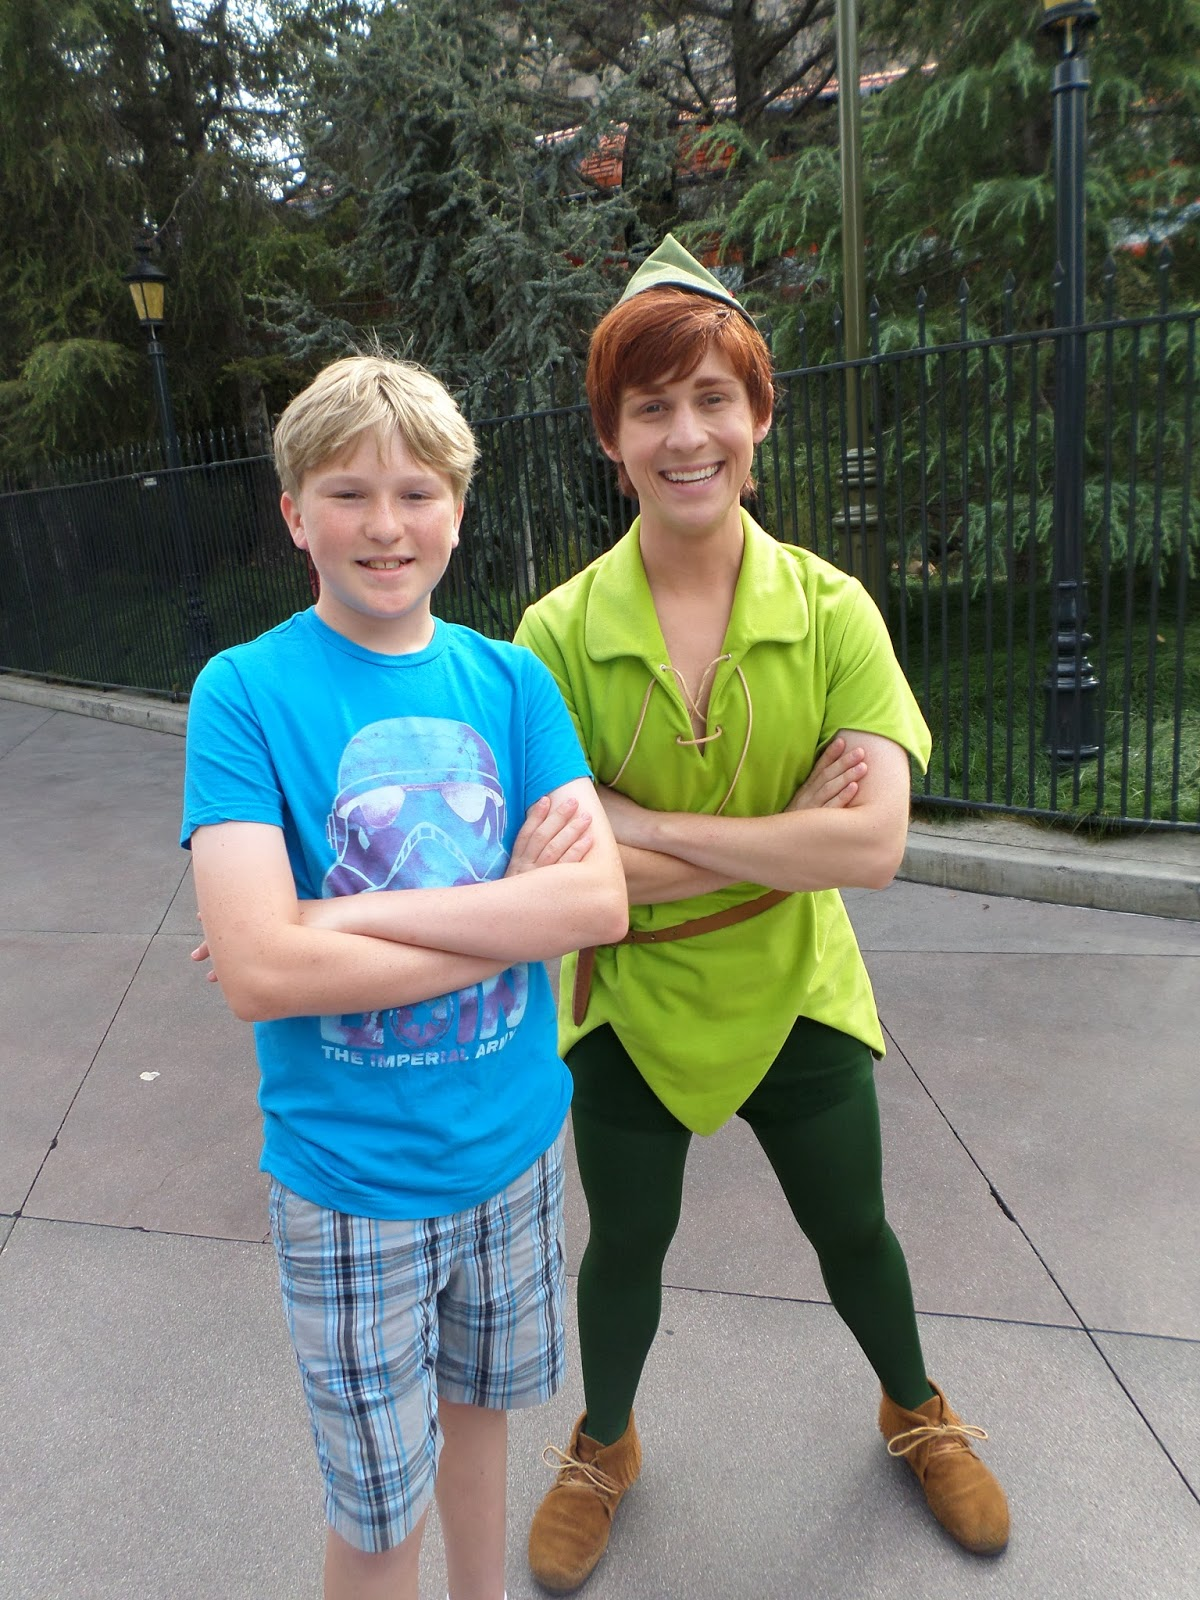 Williams family disneyland character interactions peter pan was offering photos and autographs near matterhorn bobsleds kristyandbryce Image collections